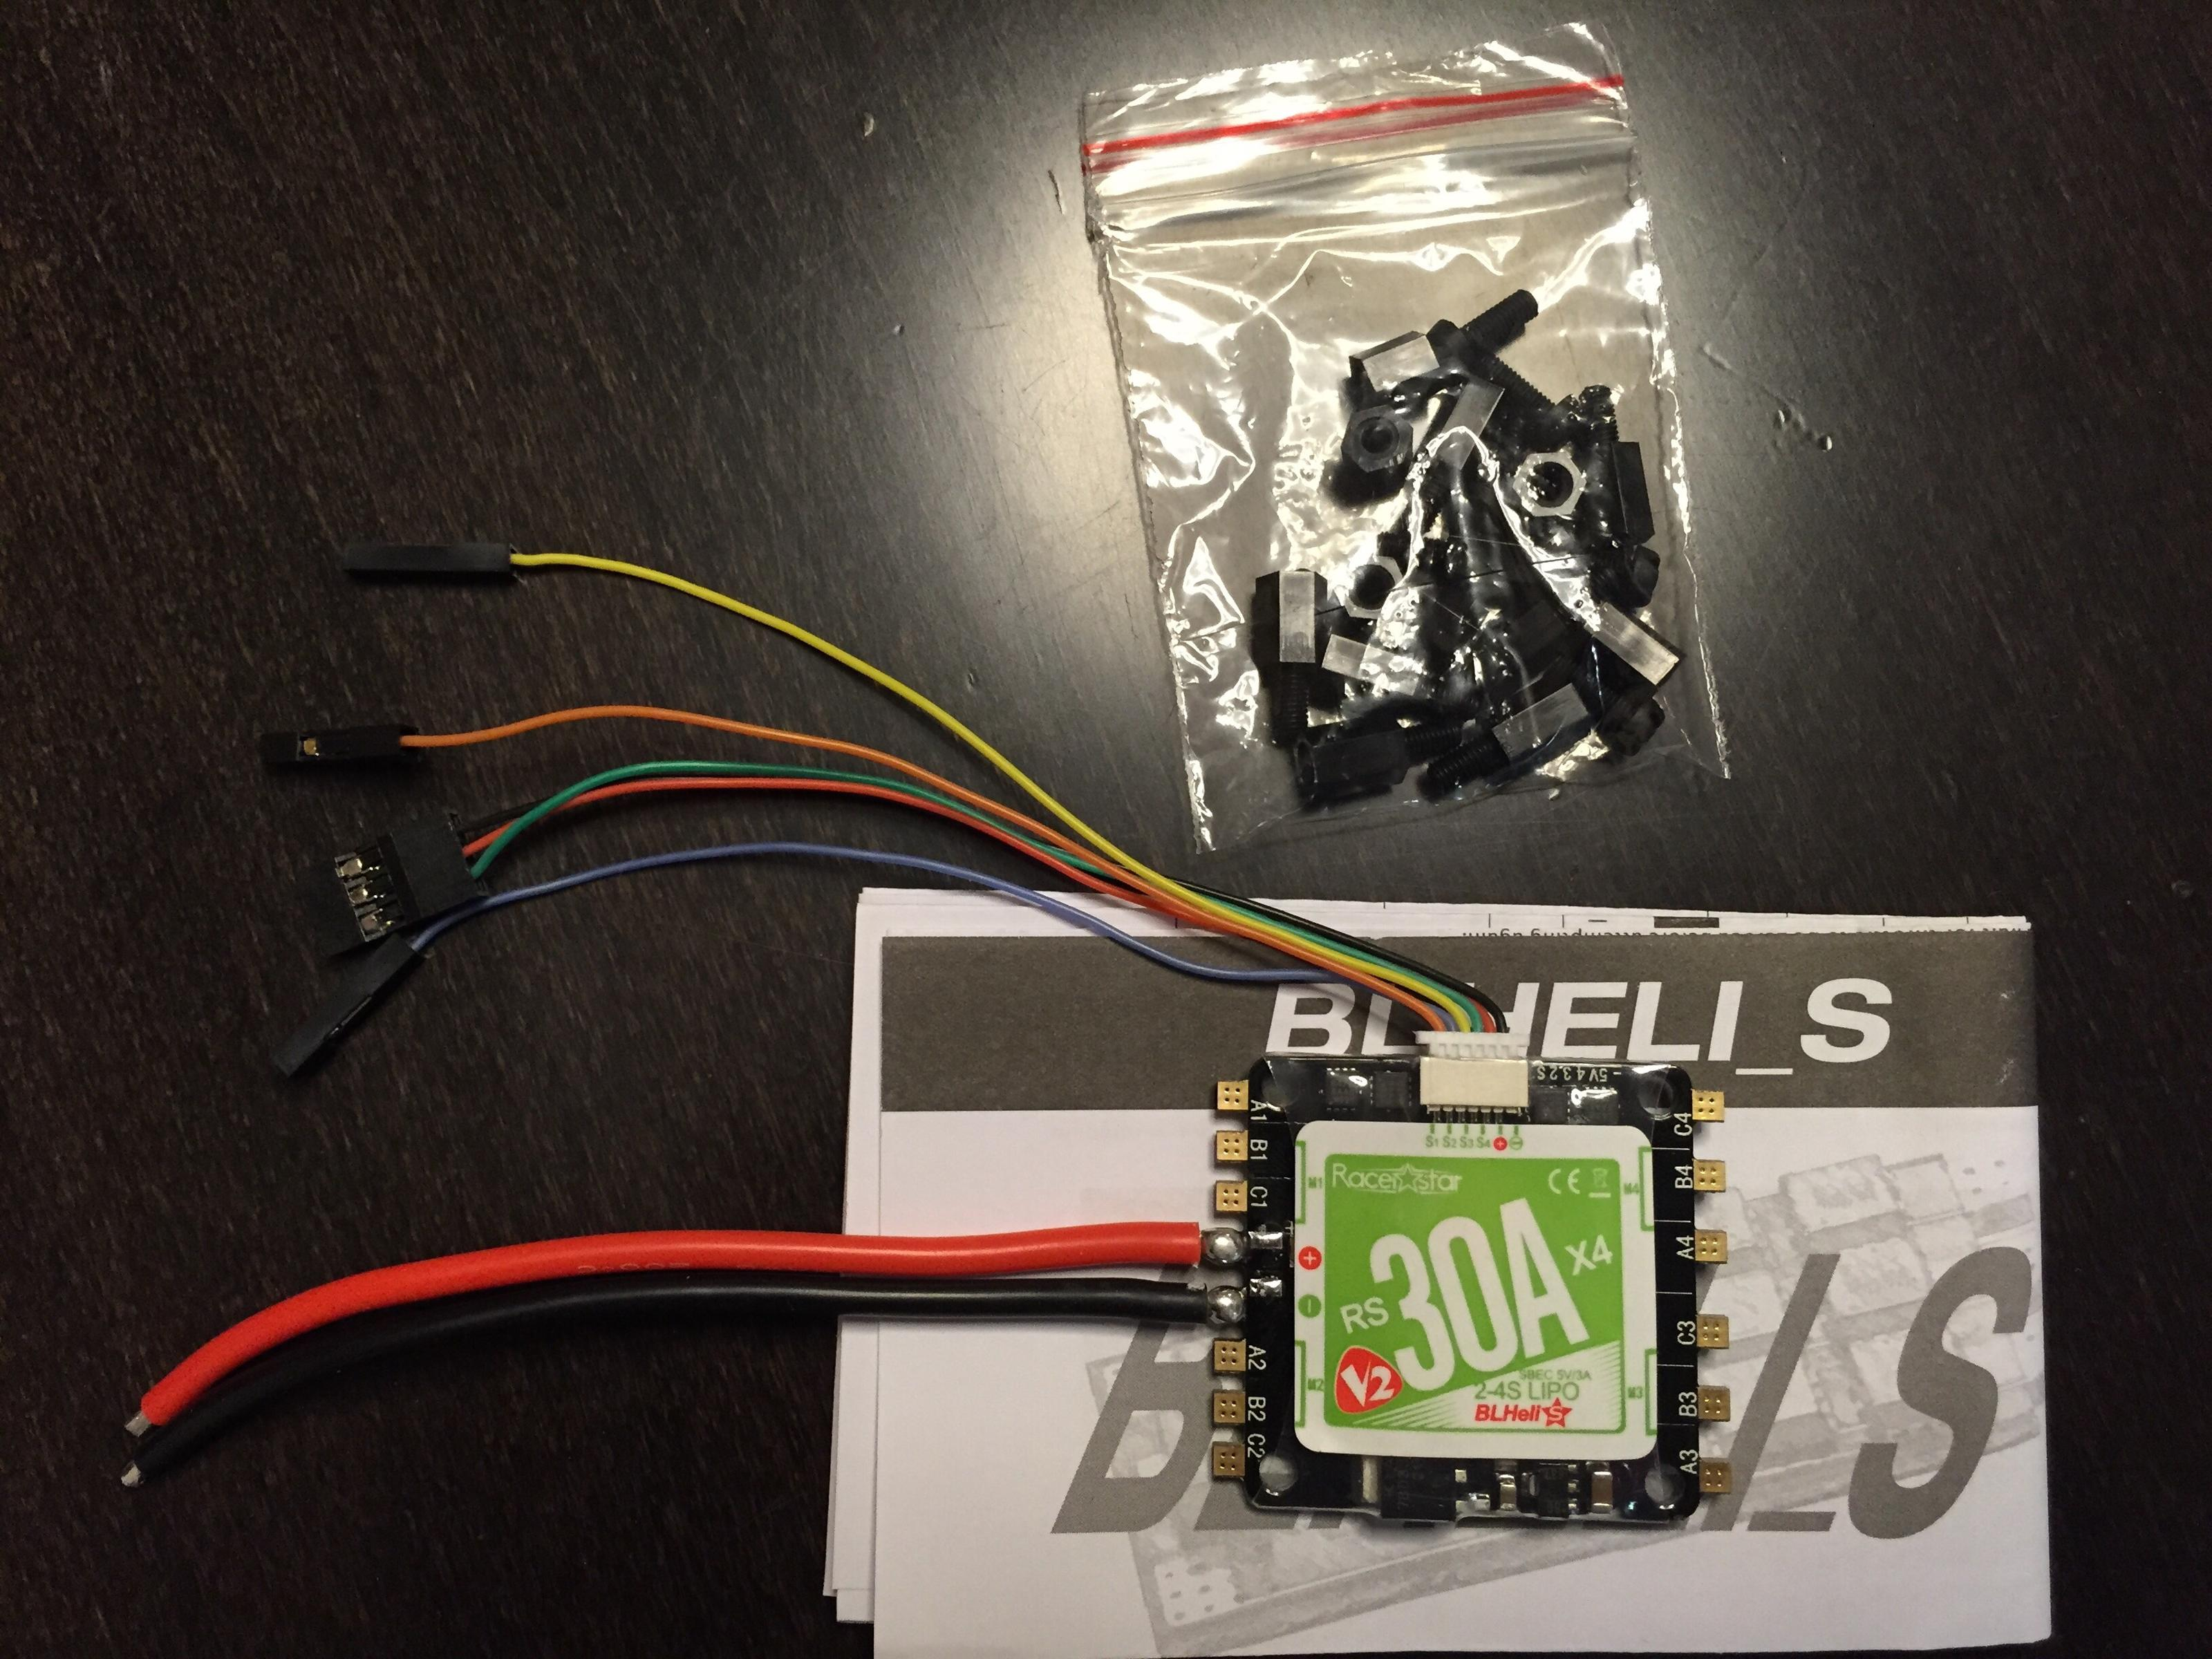 a9826442 76 image a003bf08 review of 4in1 bb2 5vbec 30a racerstar rs30x4 30a blheli_s esc  at nearapp.co